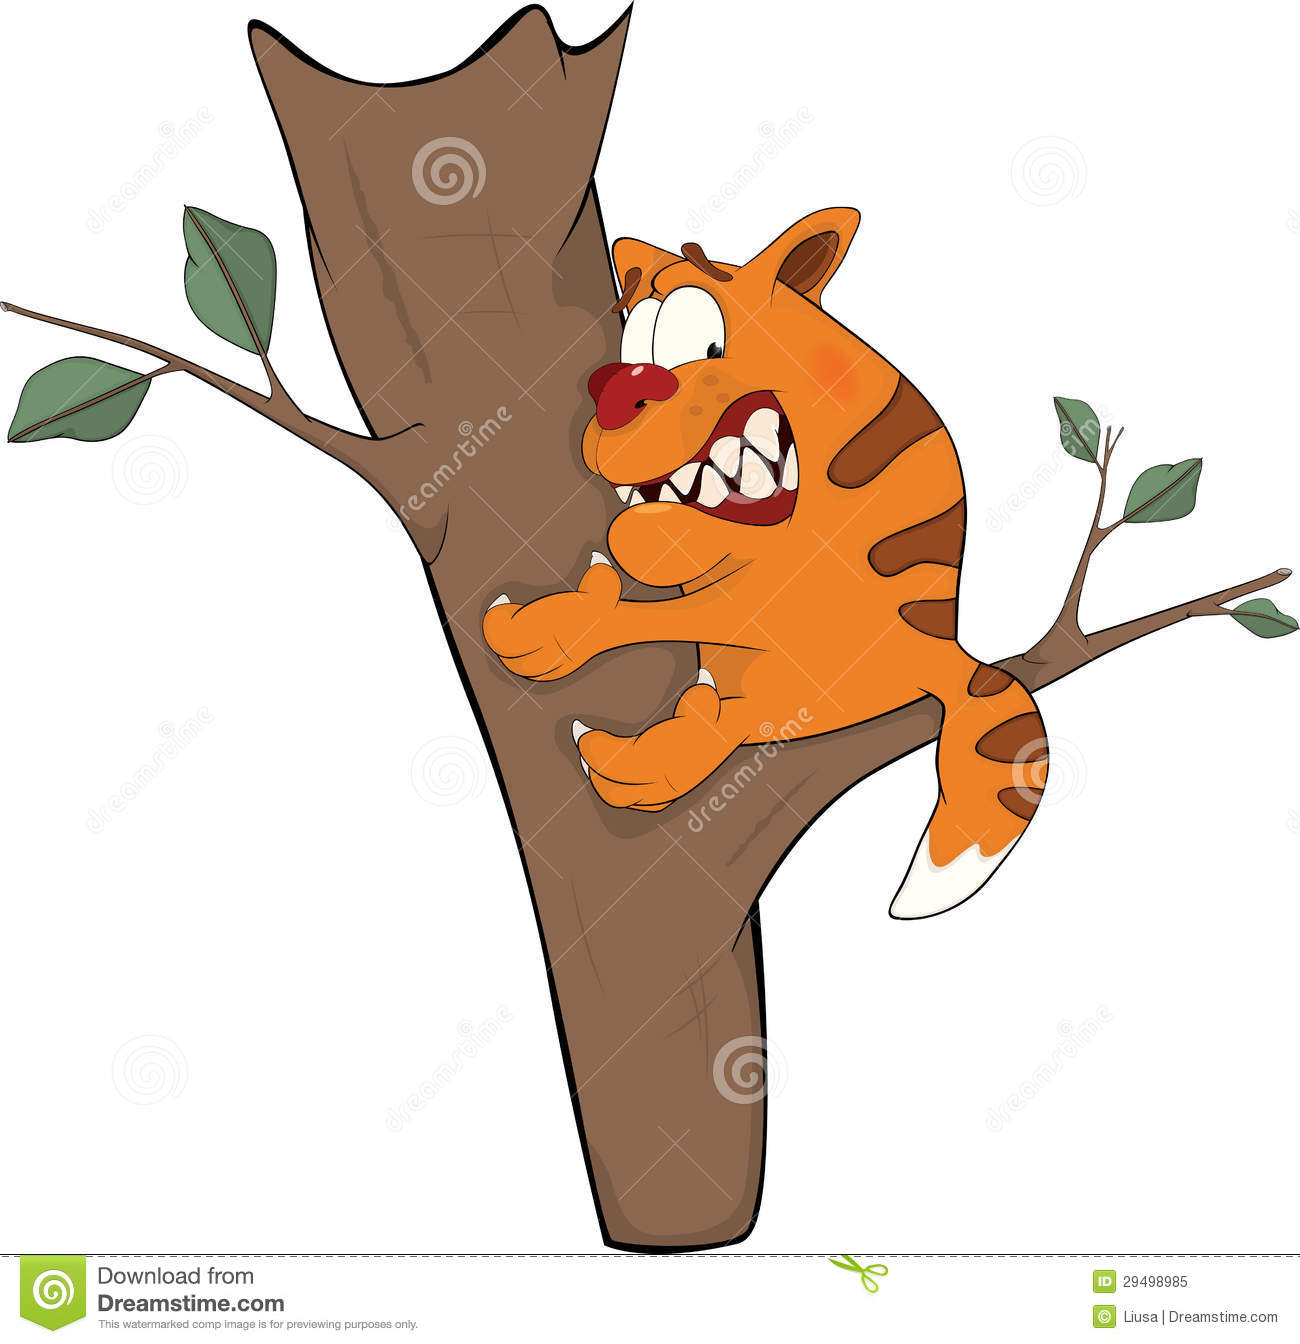 Cat in a tree clipart.